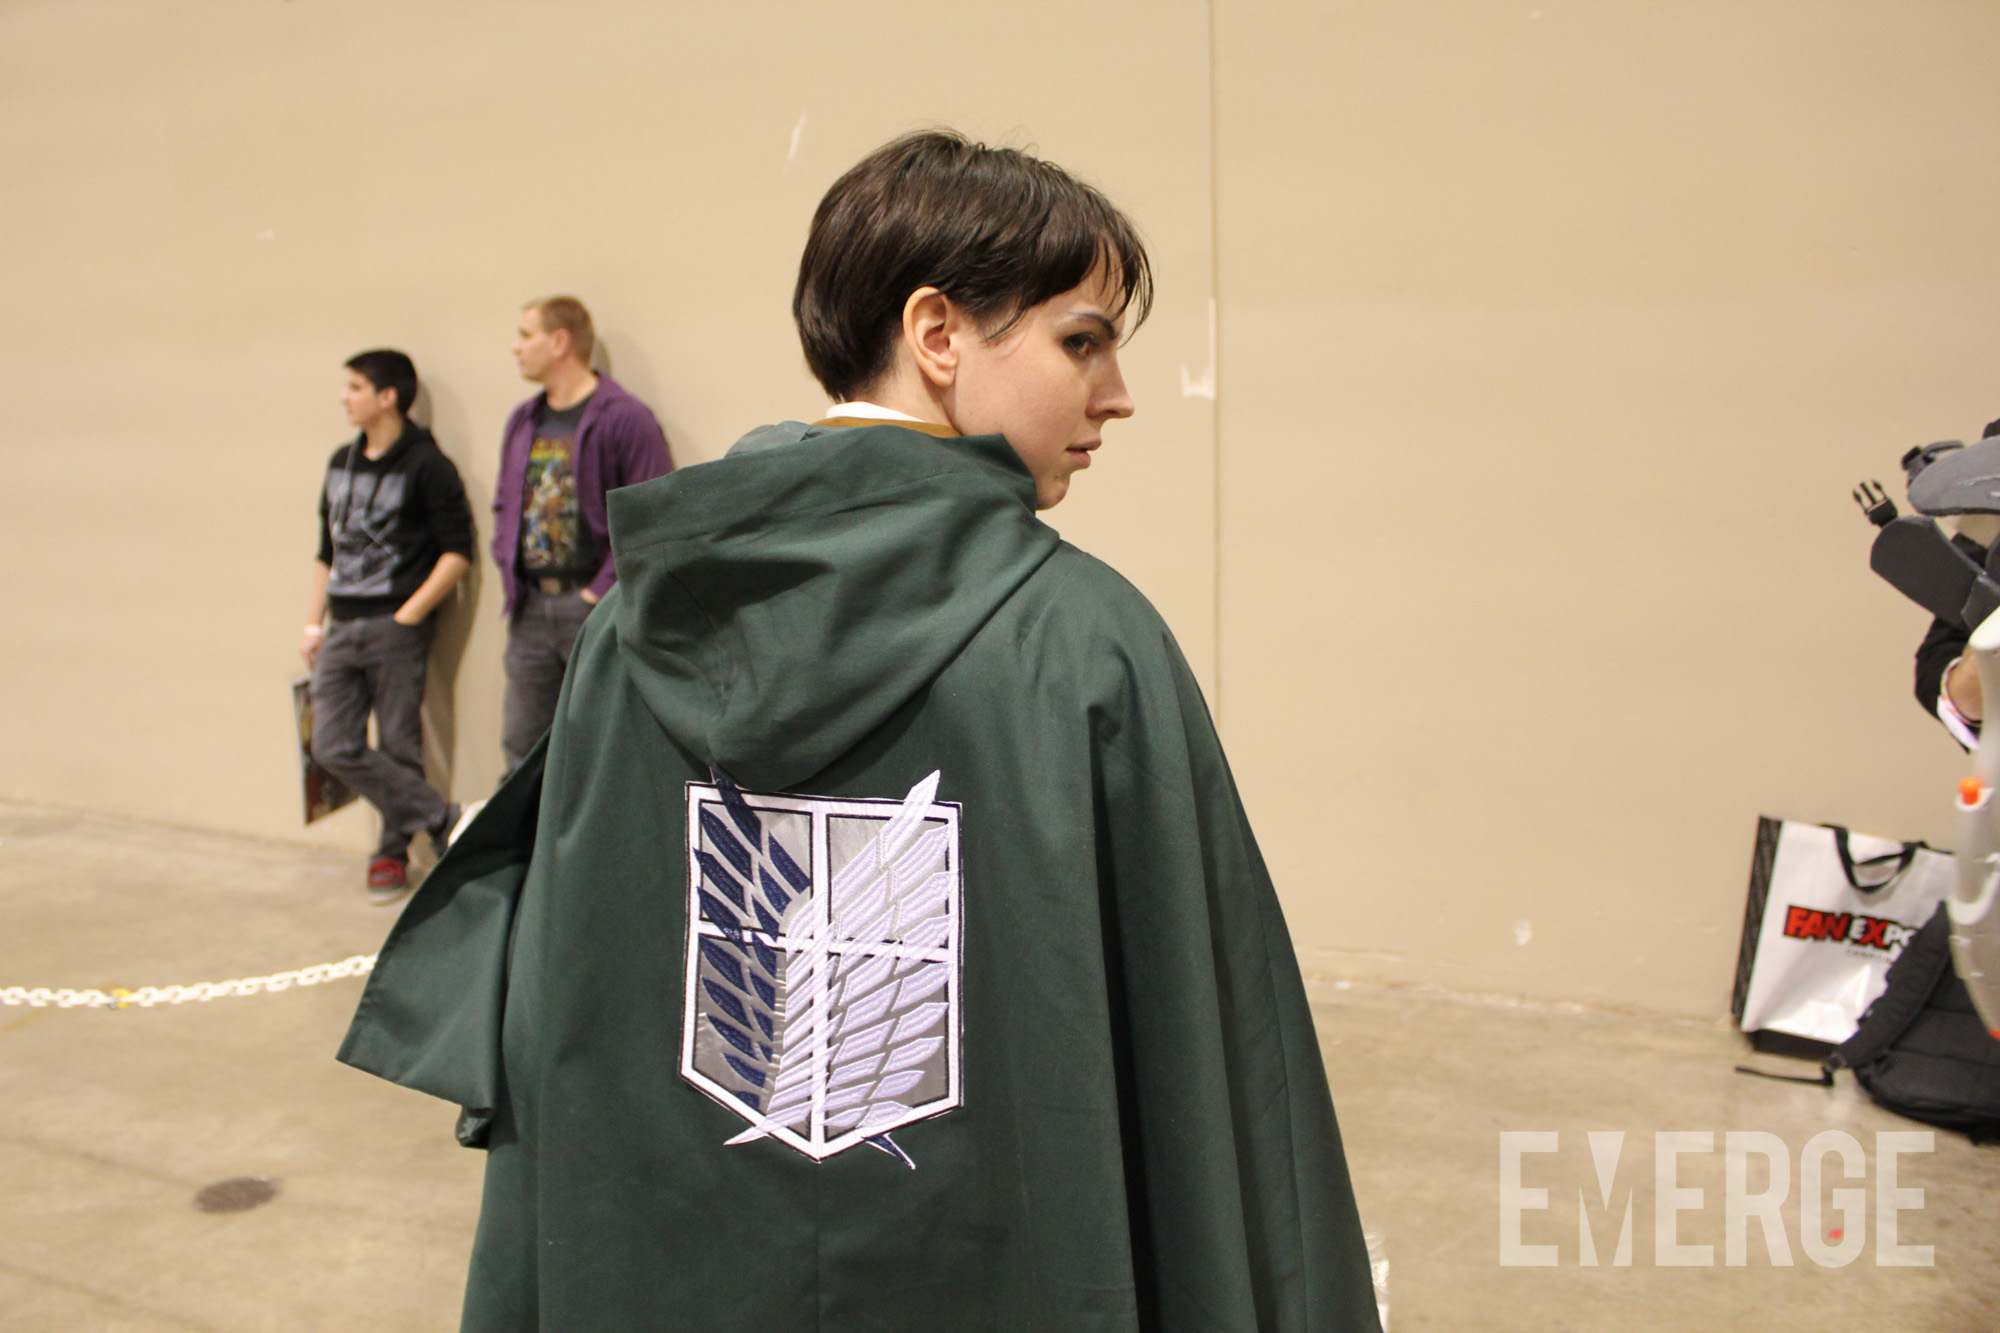 Captain Levi from Attack on Titan was also present on the floor. Thankfully, there were no 12-meter titans around to eat us